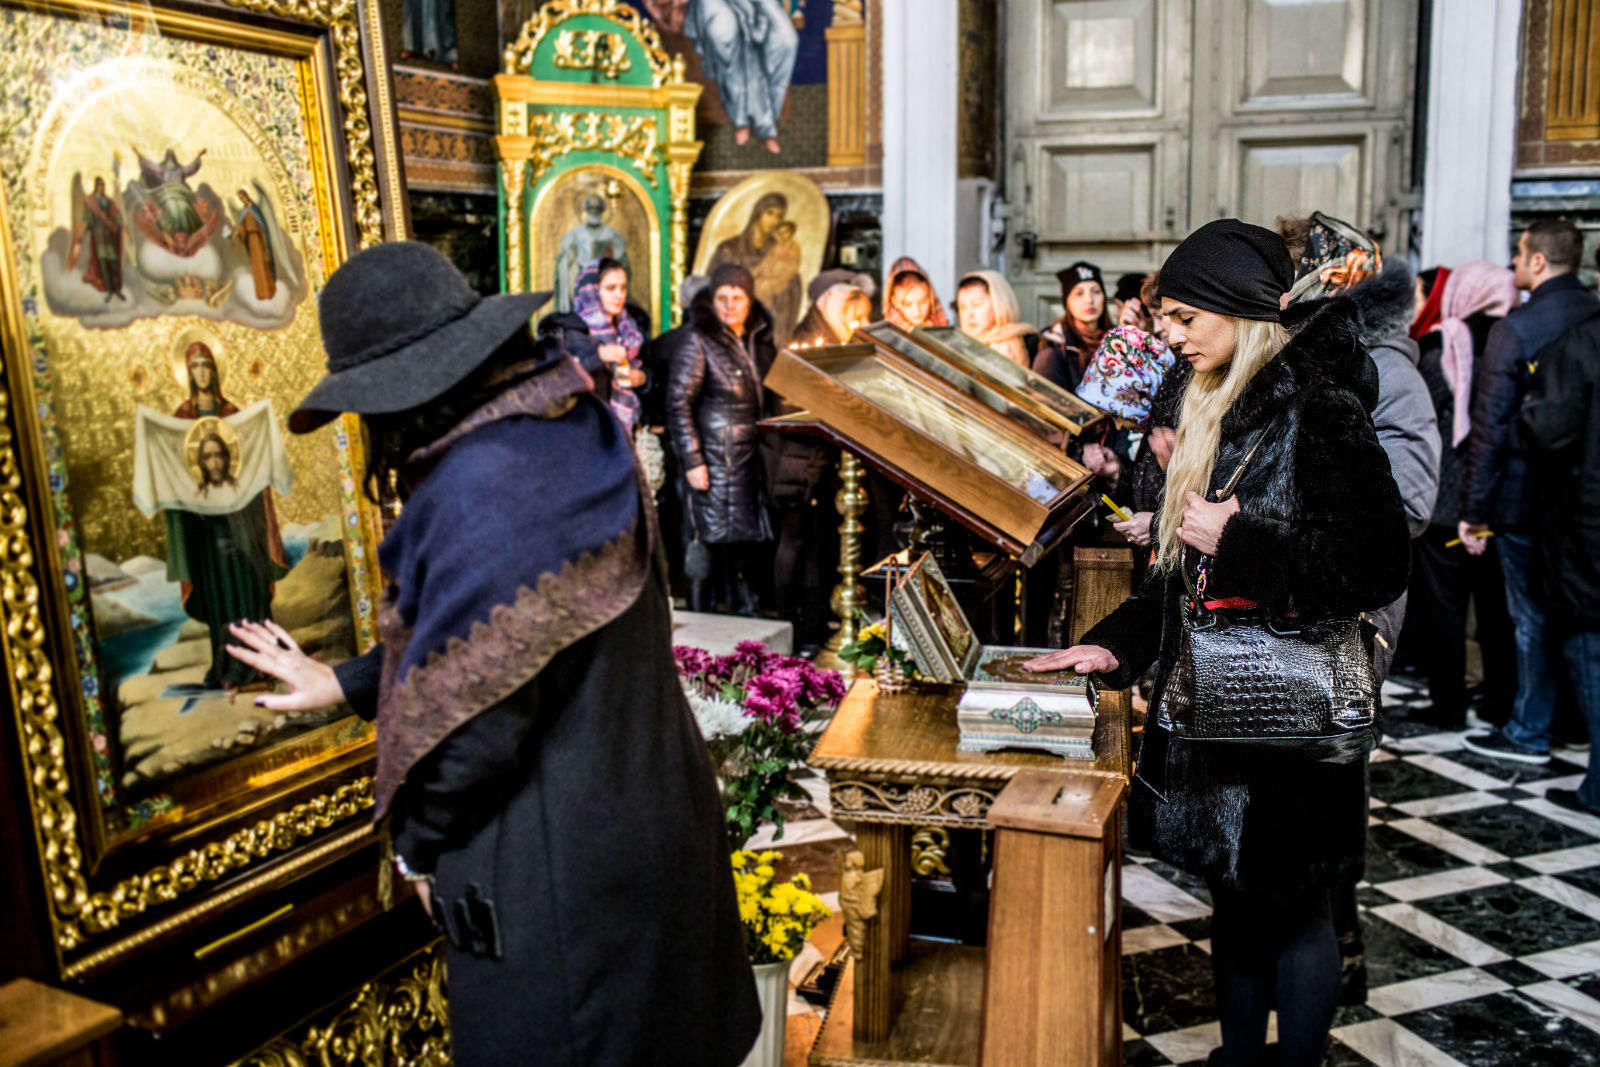 Women praying in Orthodox church in Chișinău.